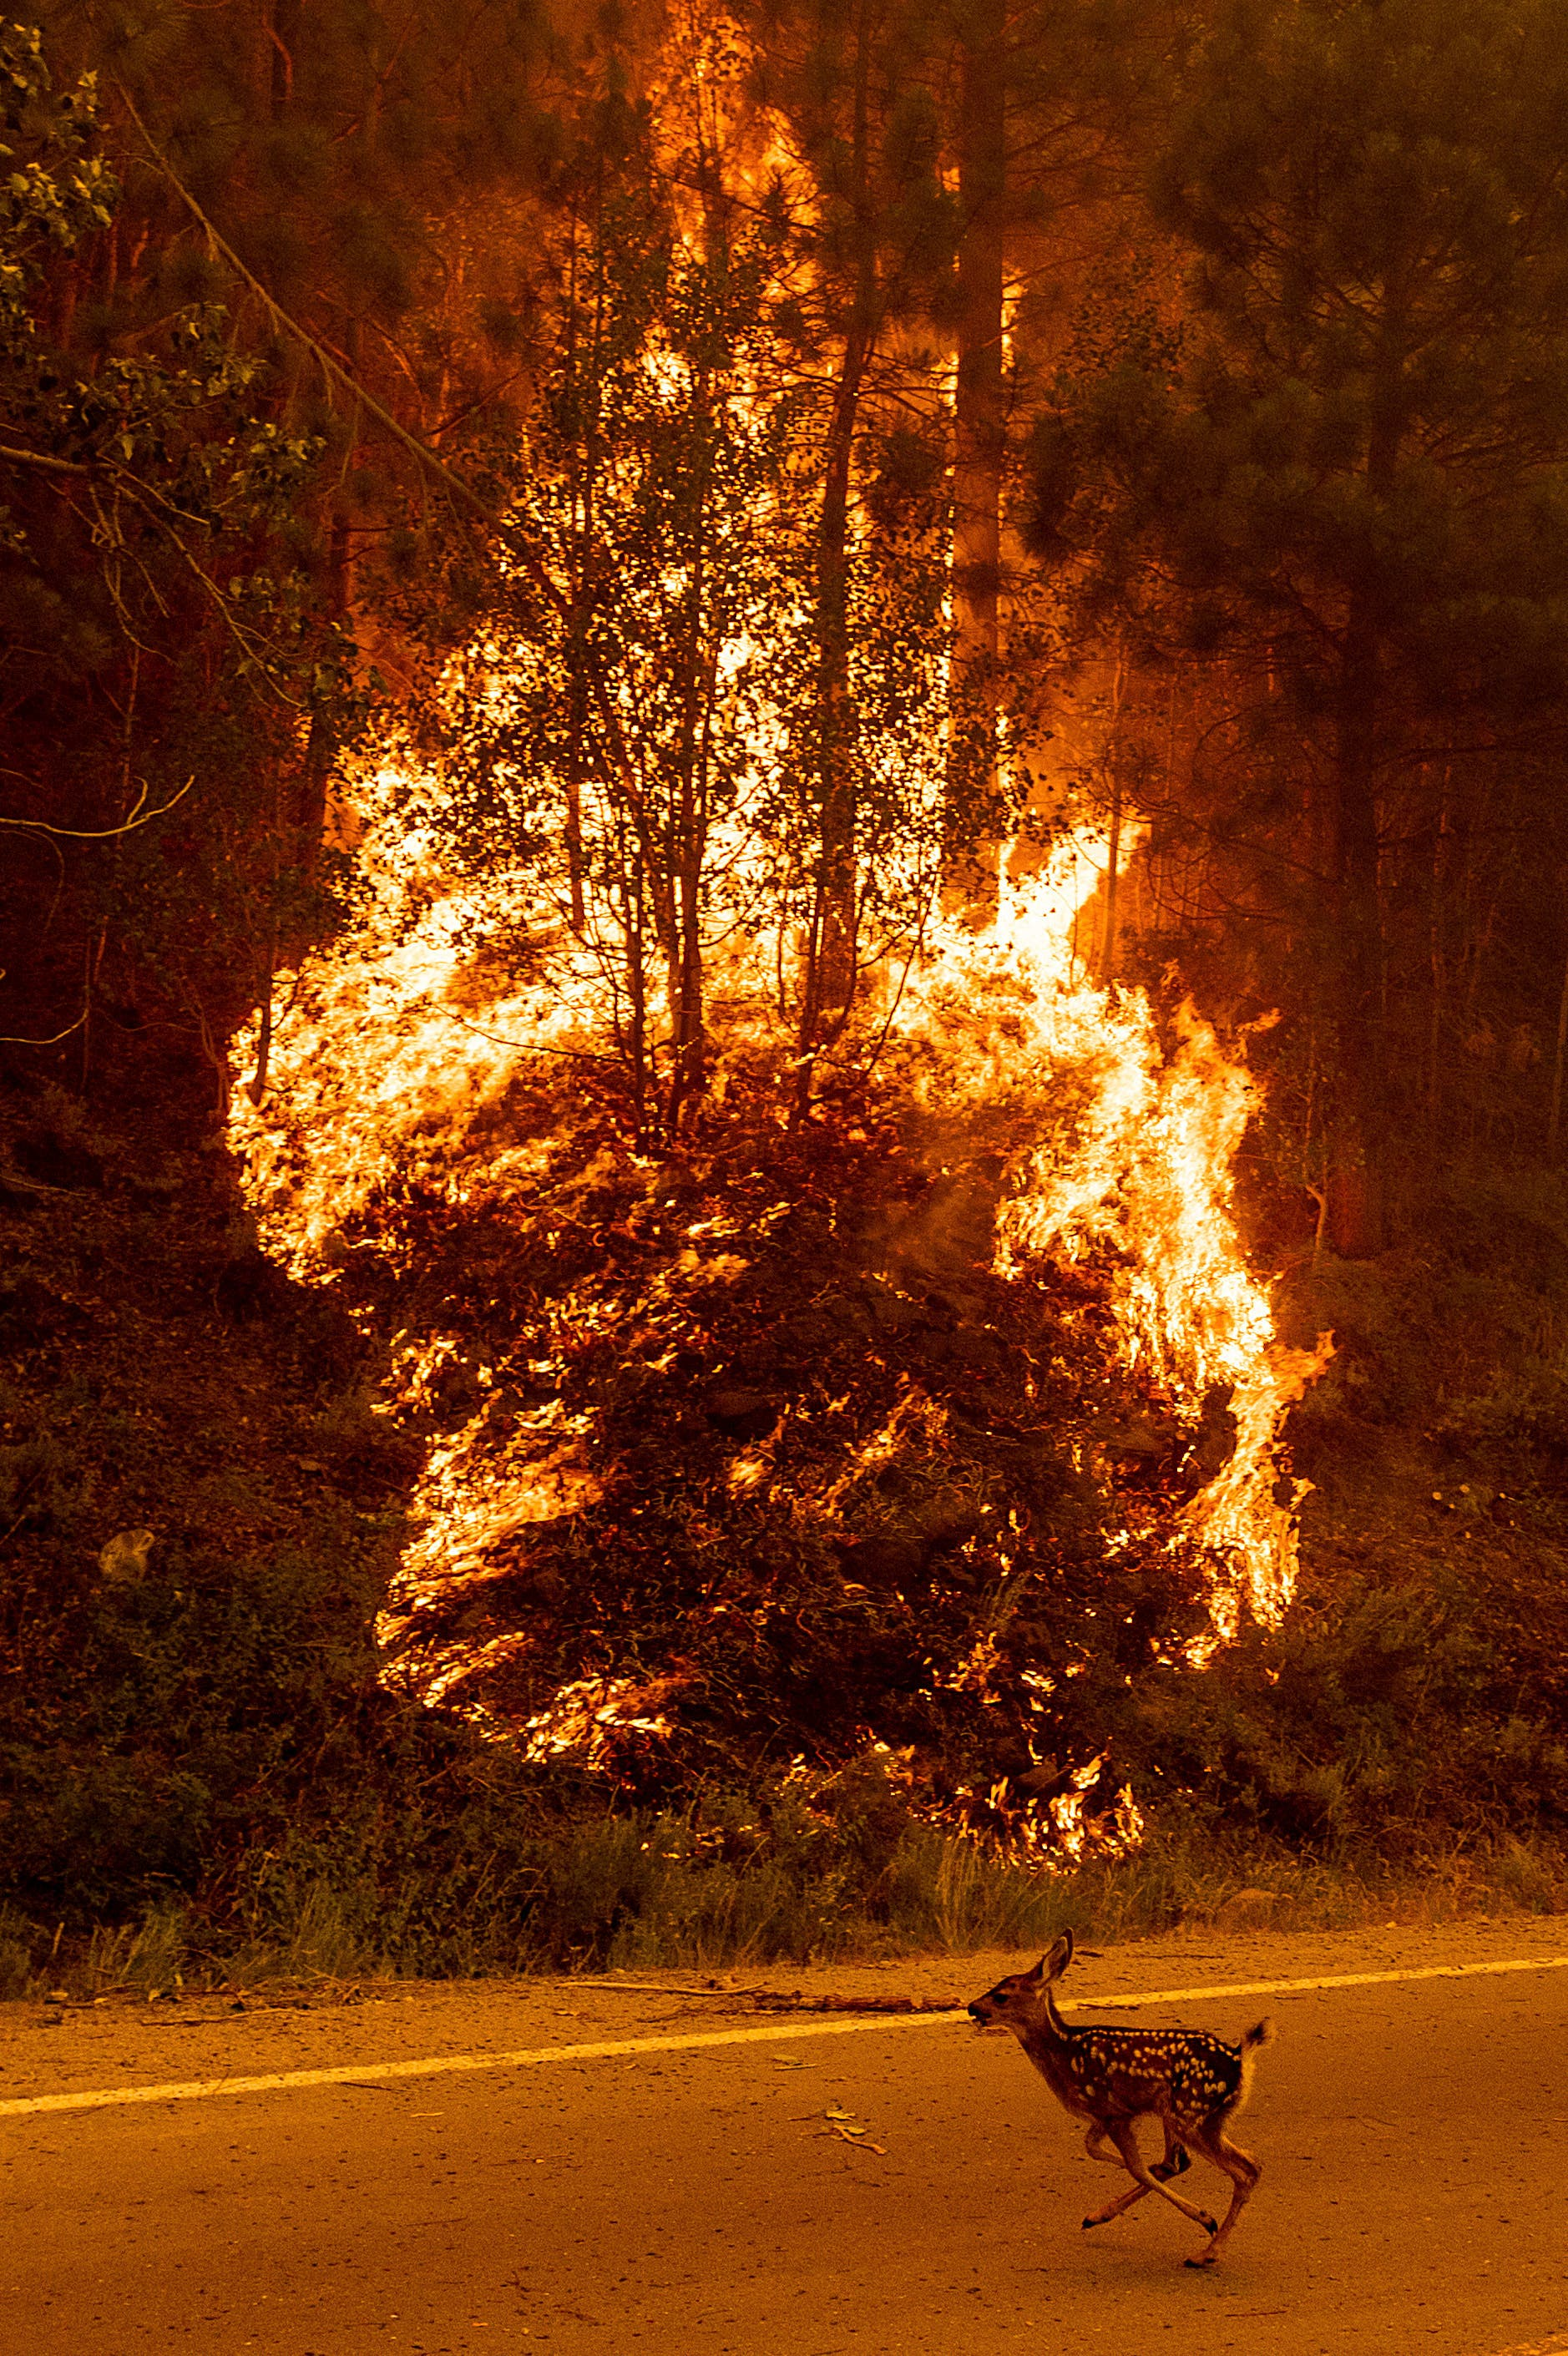 An animal sprints across a road as the Sugar Fire, part of the Beckwourth Complex Fire, burns in Plumas National Forest, California, on Thursday, July 8, 2021. (AP)